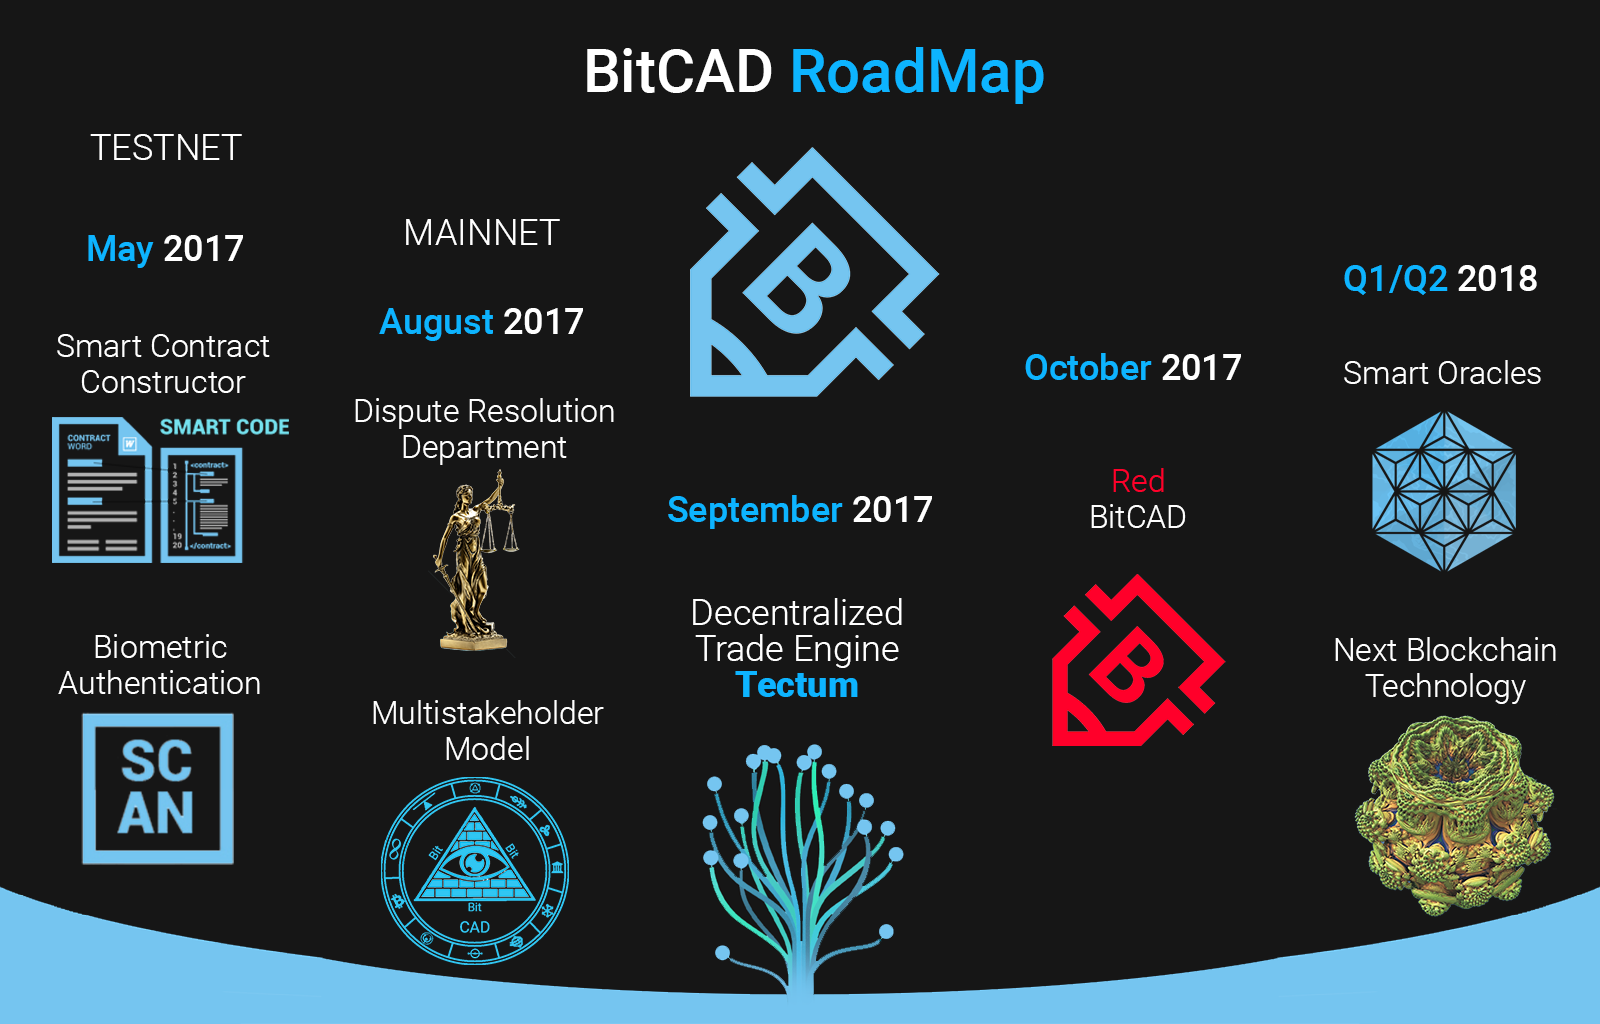 here you can see two main phases the testnet to be used for testing the system and the mainnet coming august 2017 to make bitcad fully operational